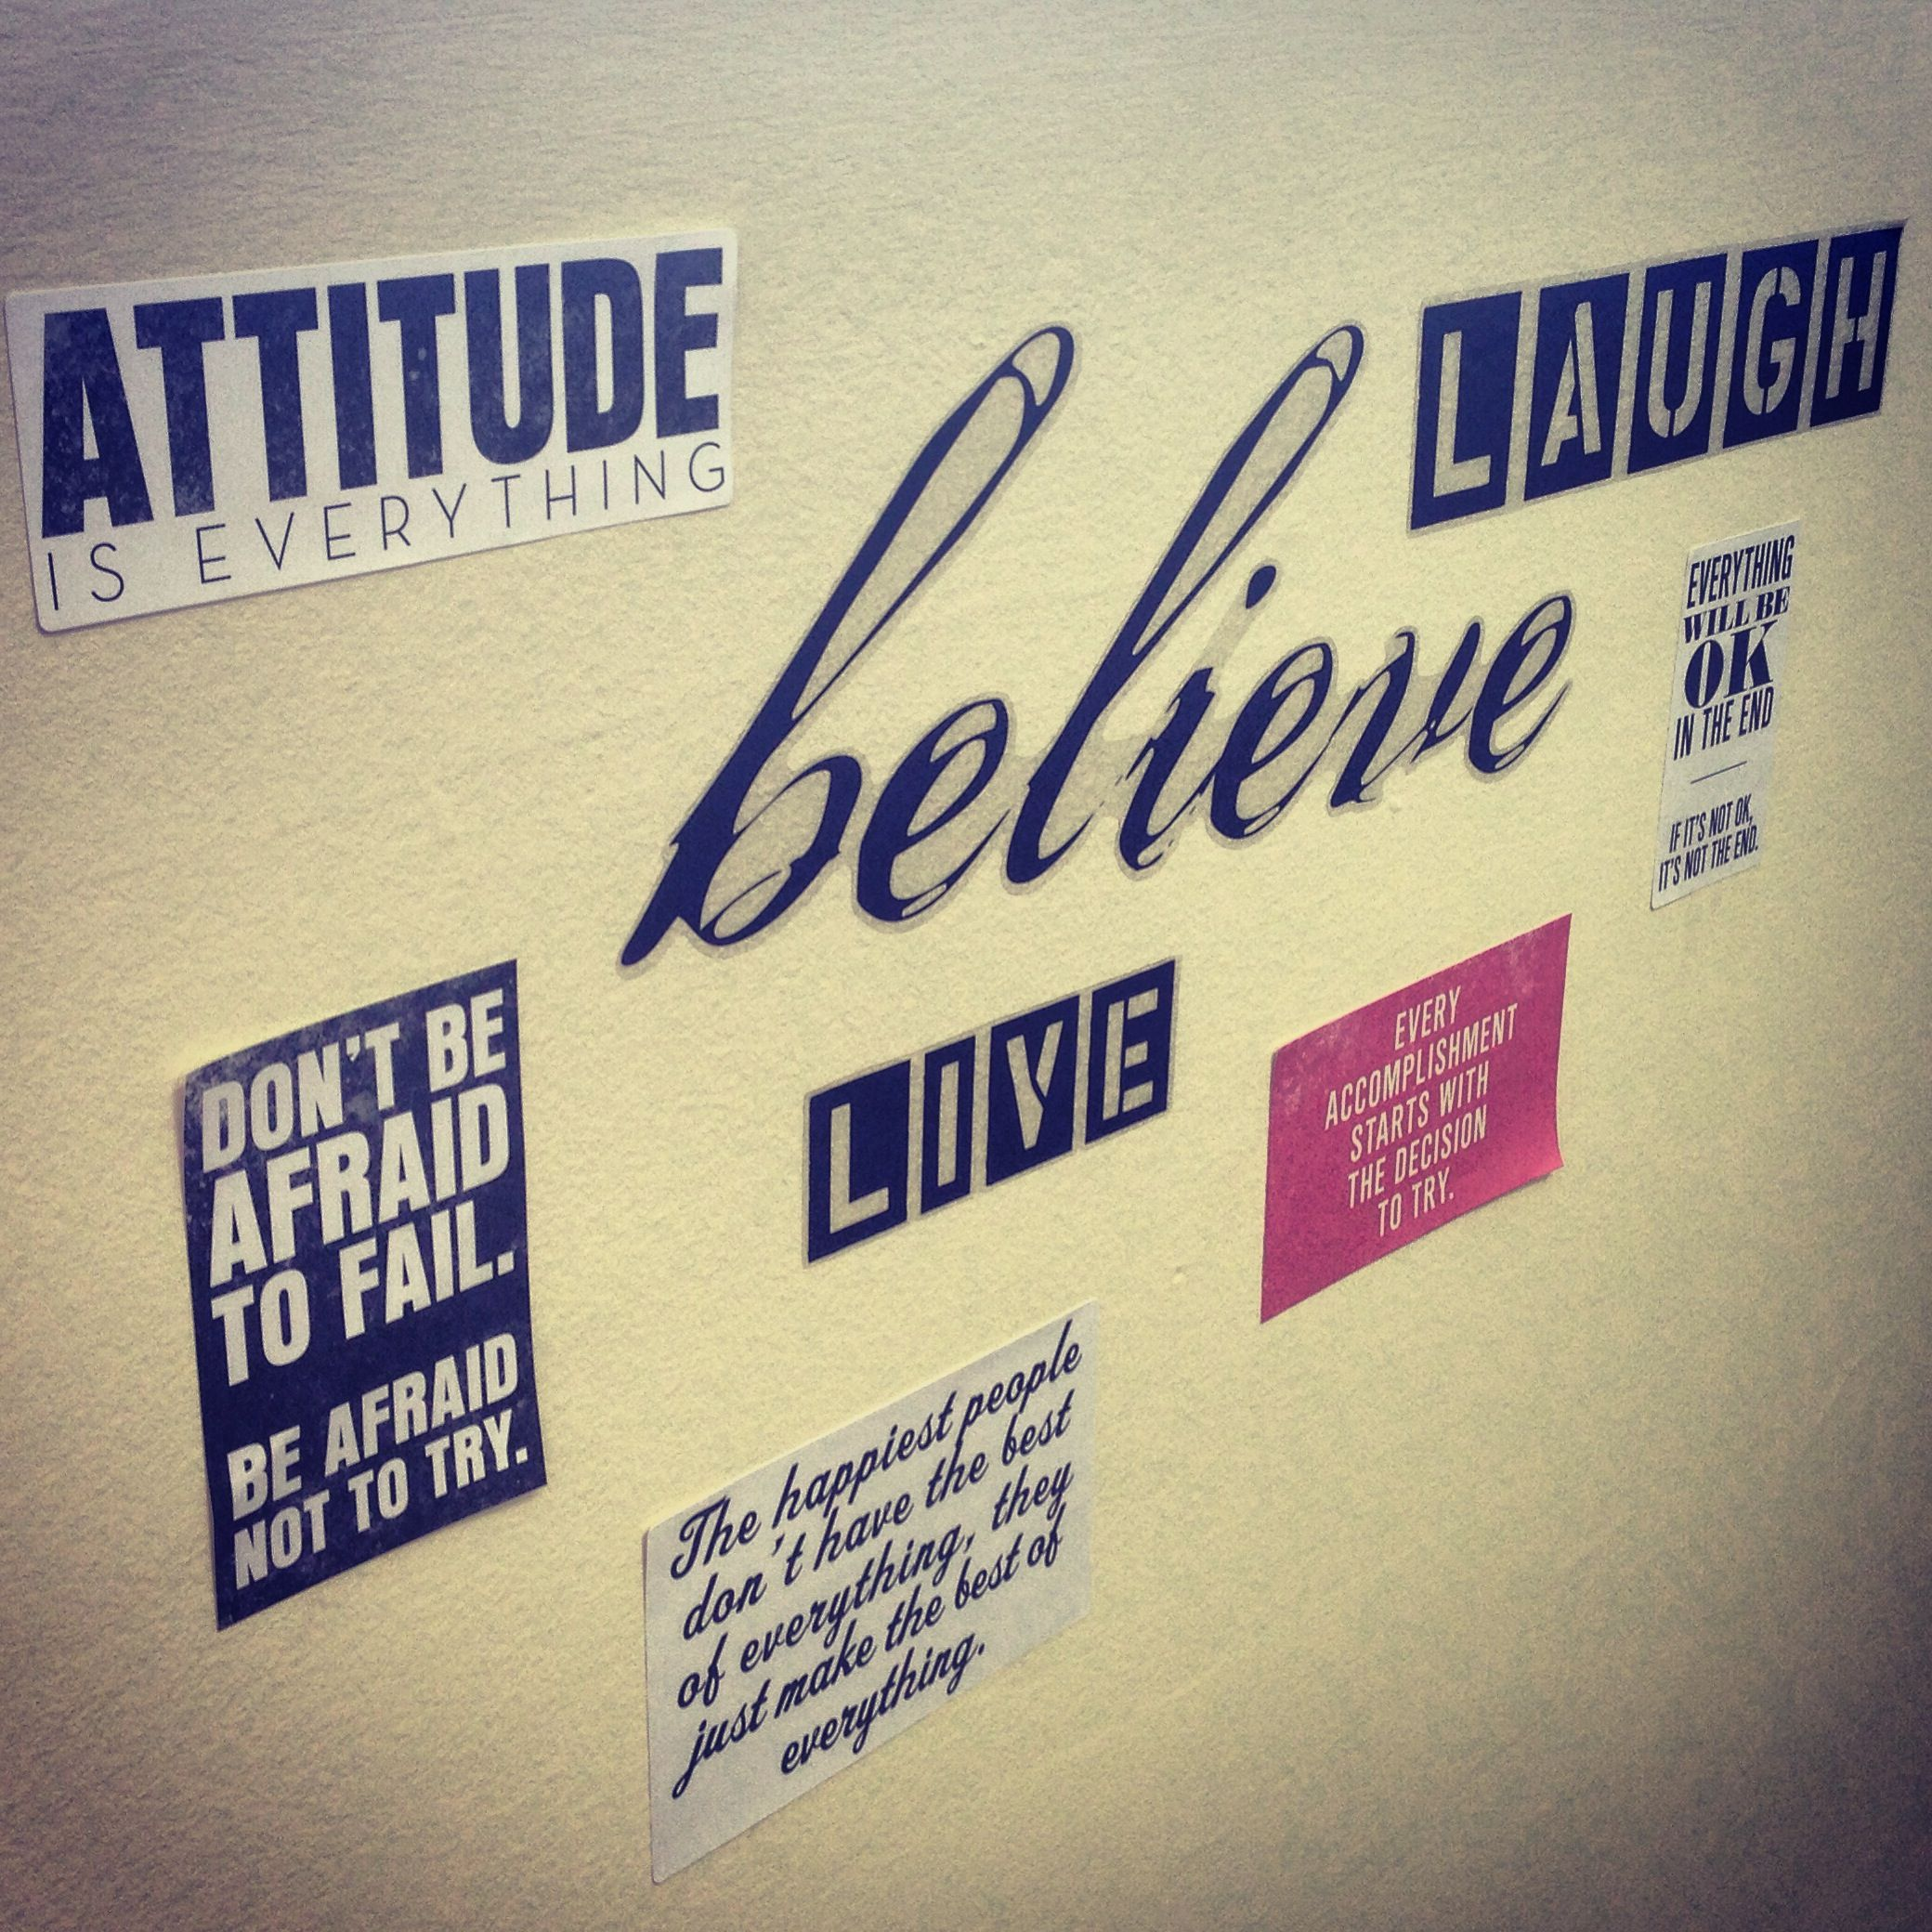 Office wall decor to keep ideas flowing and motivation high ...